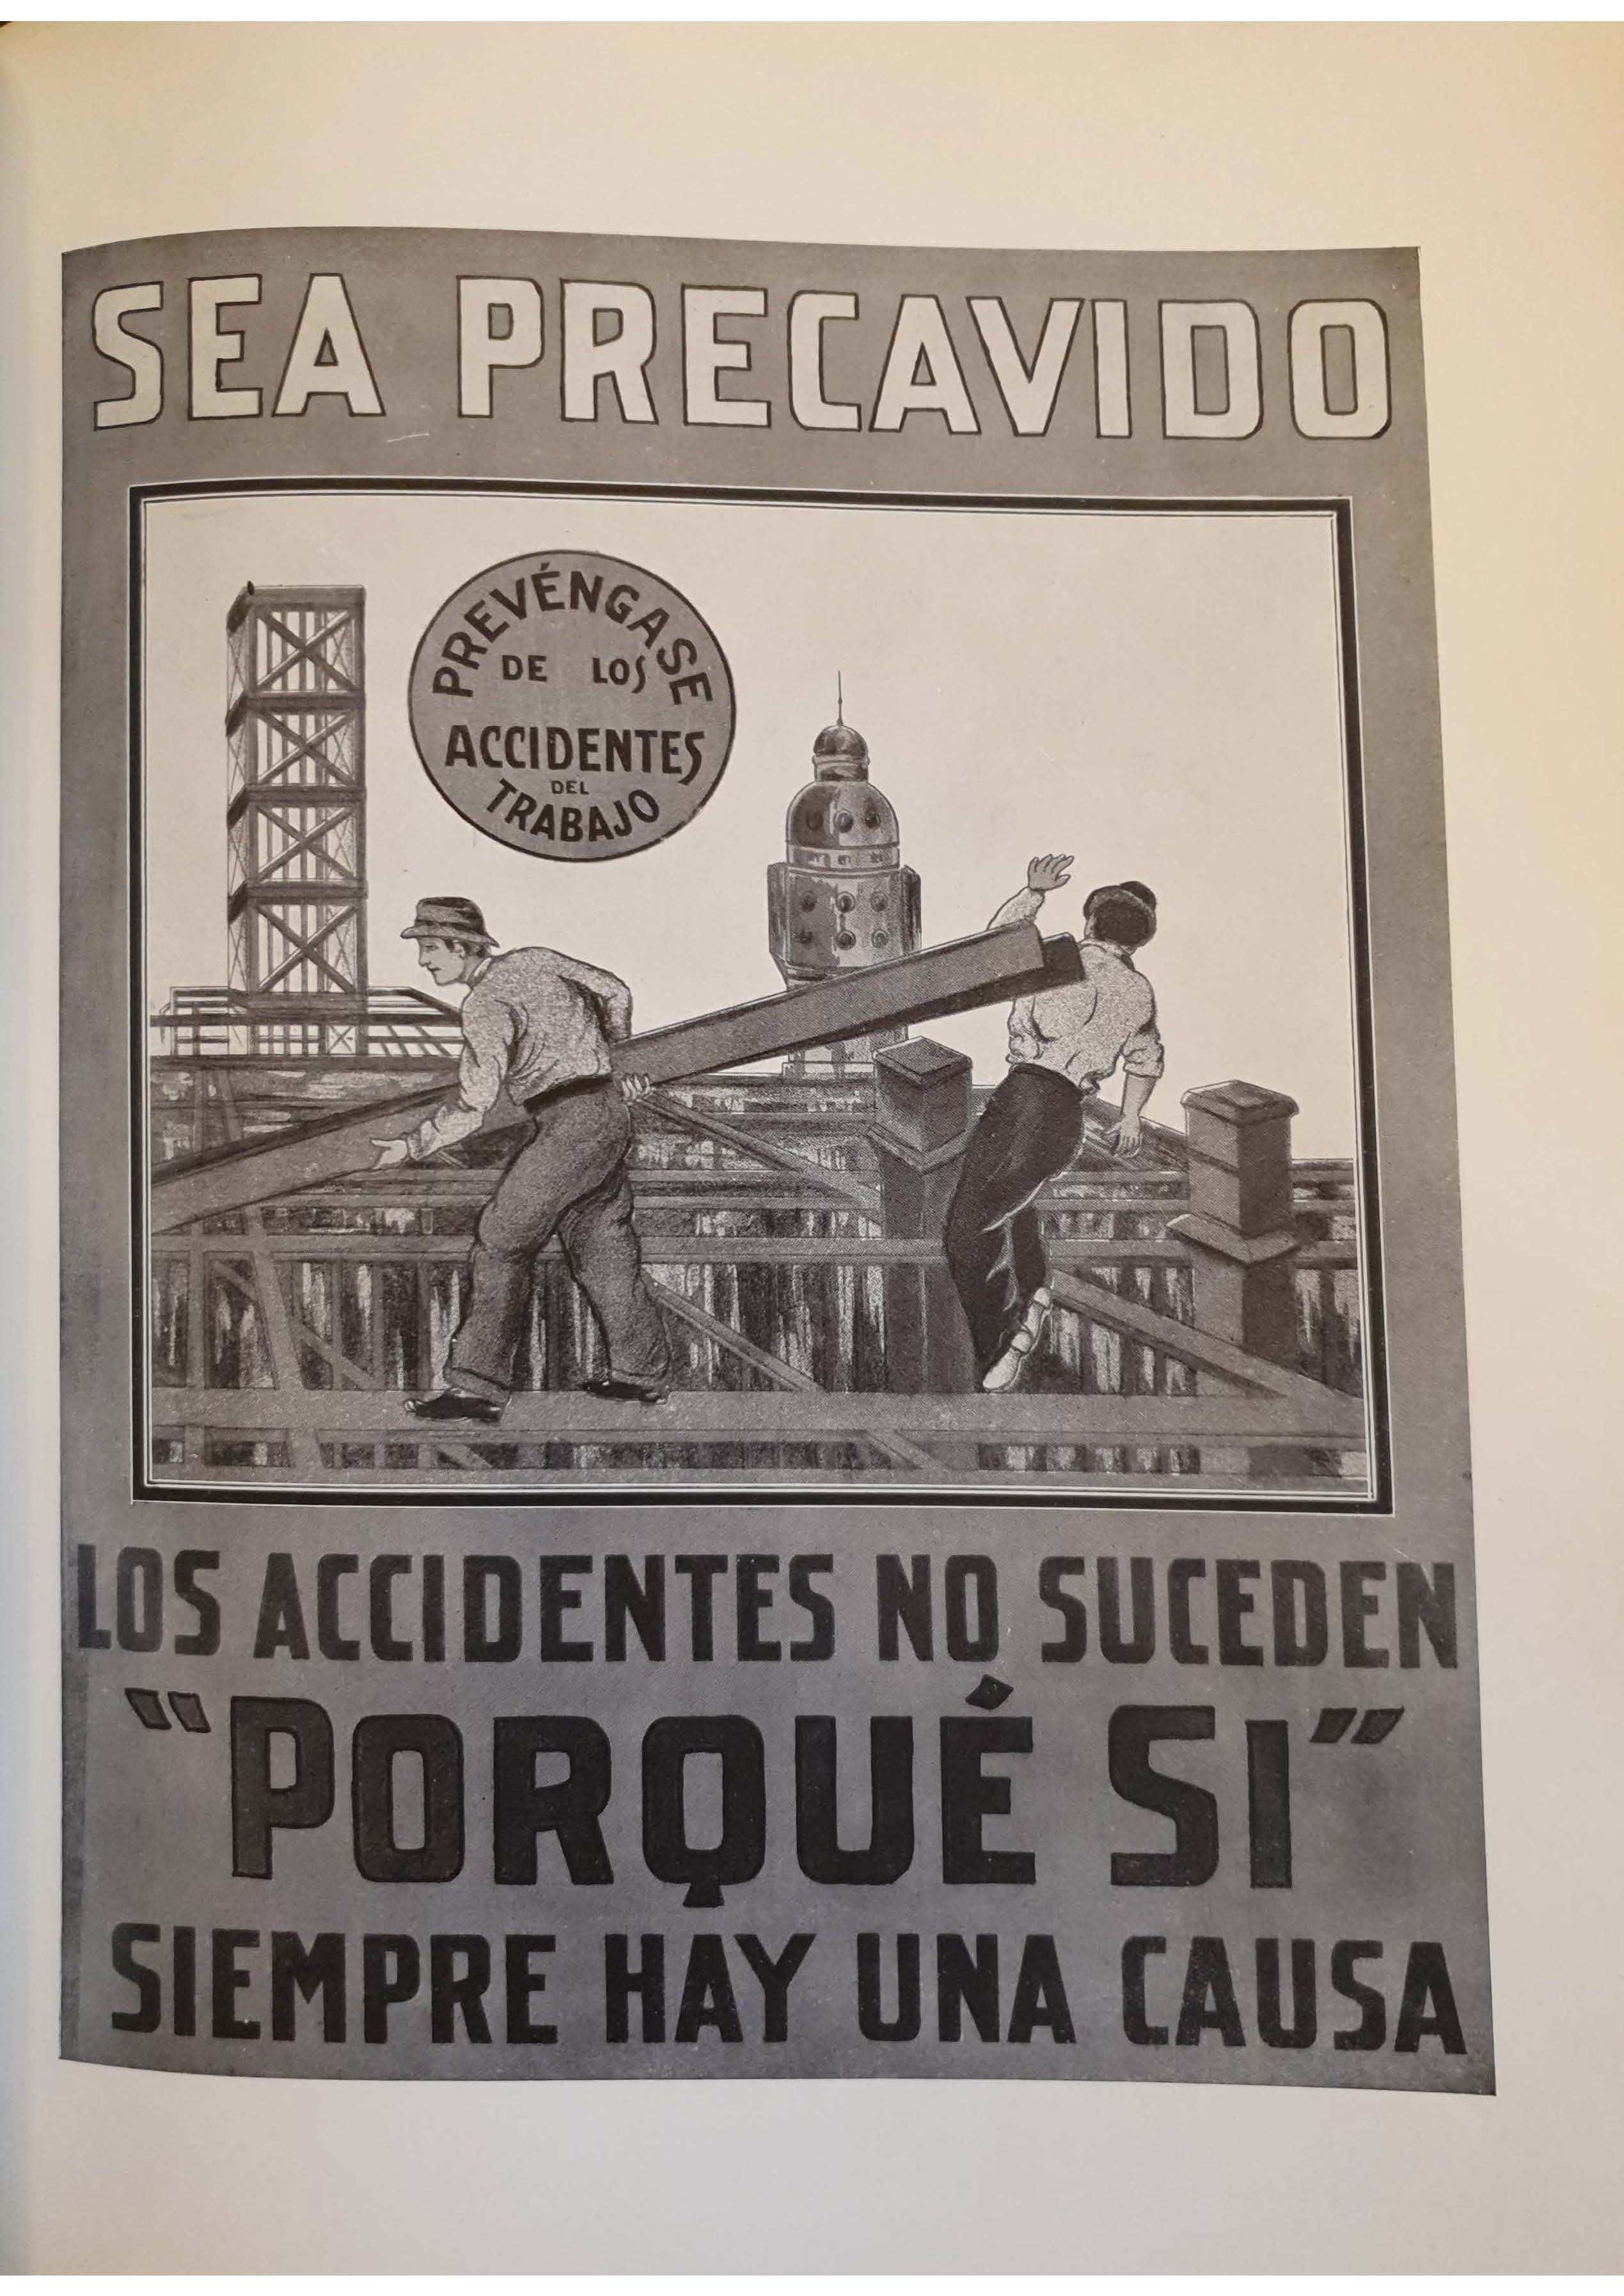 Call for the prevention of work-related accidents in Argentina (1930s)